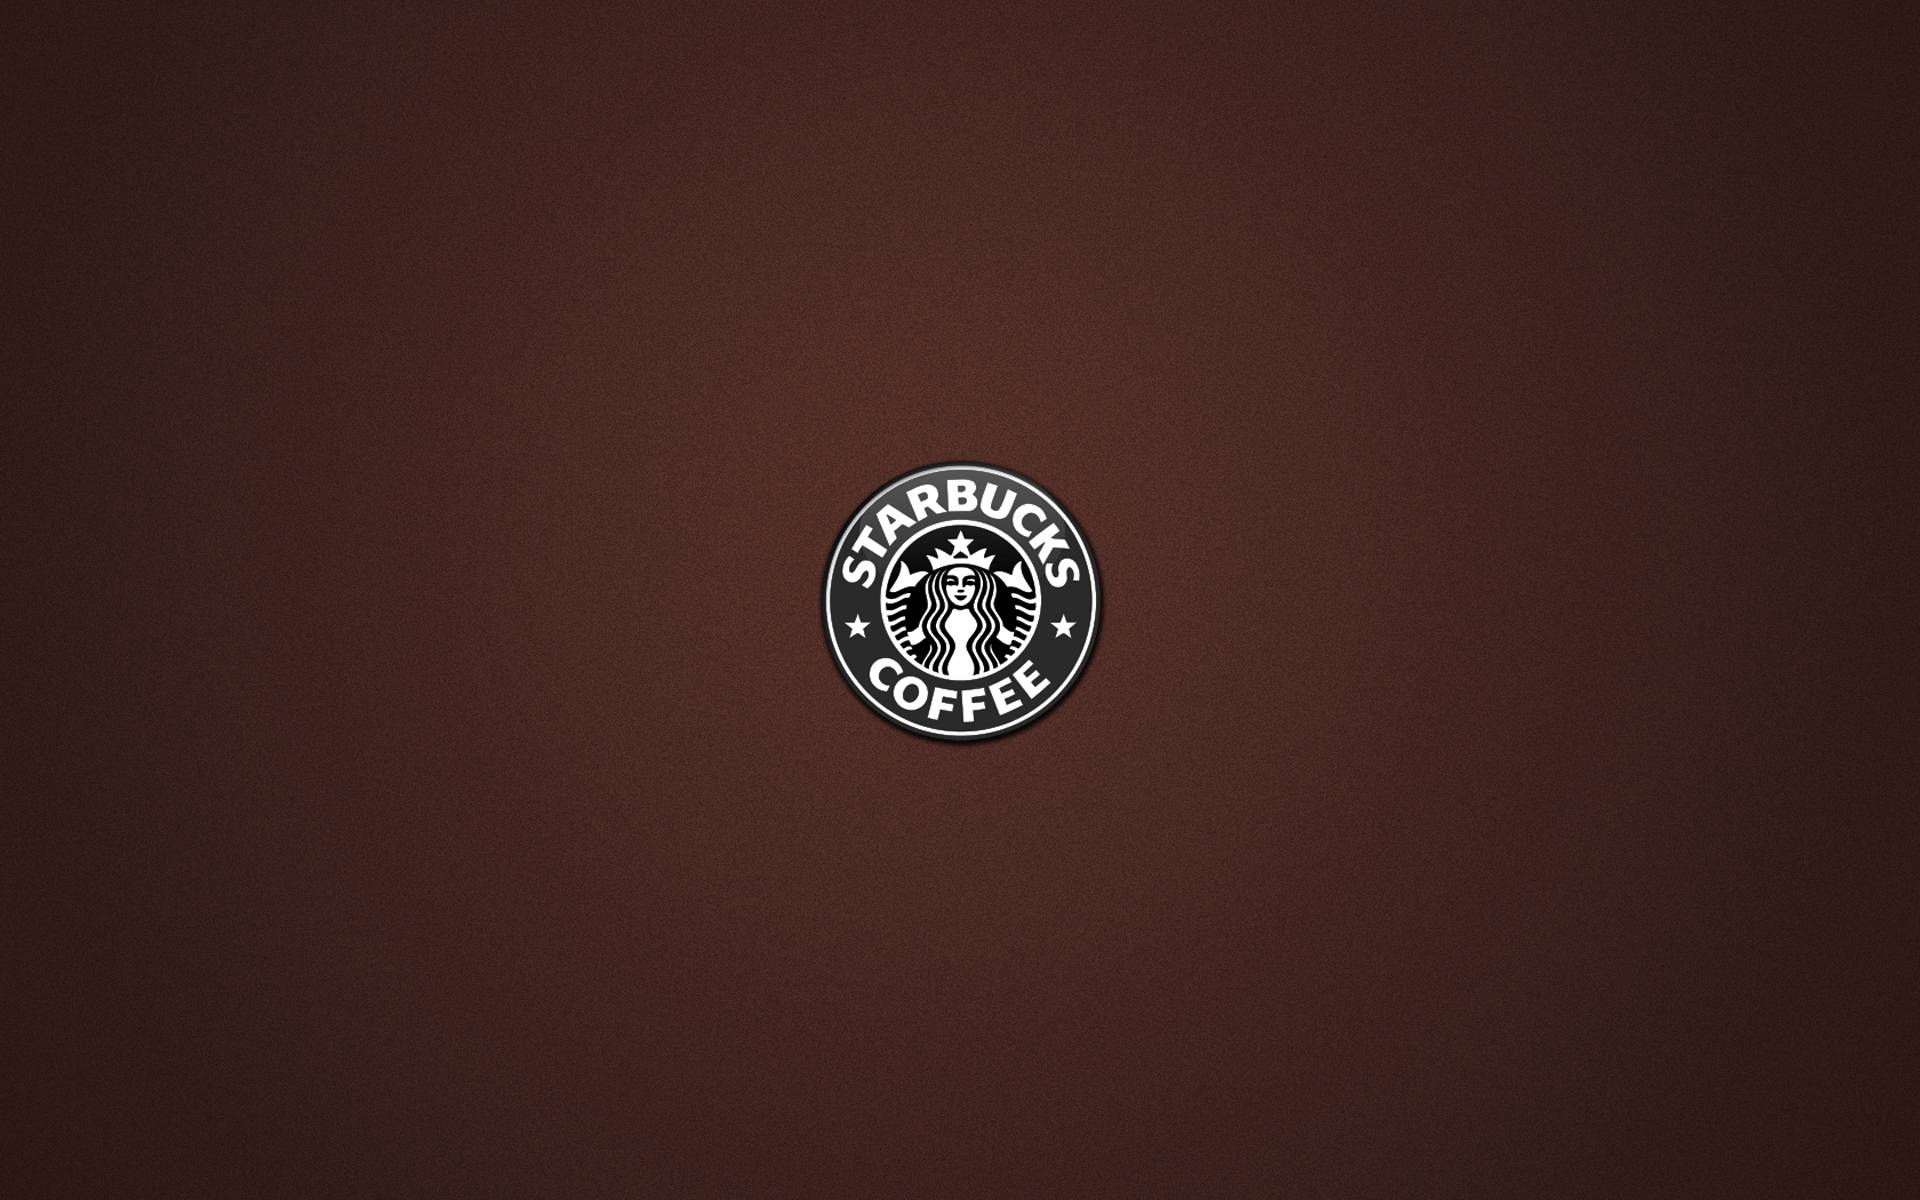 Starbucks Wallpapers - Full HD wallpaper search